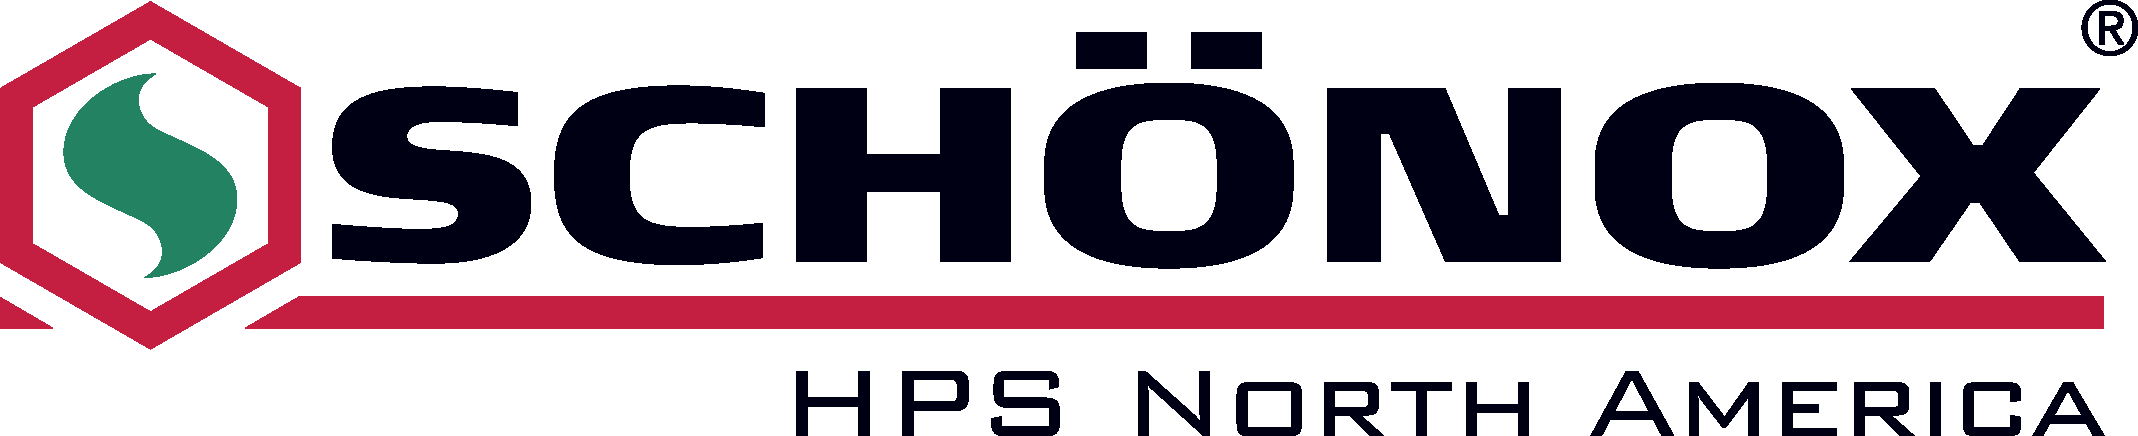 Schönox HPS North America, Inc. Logo